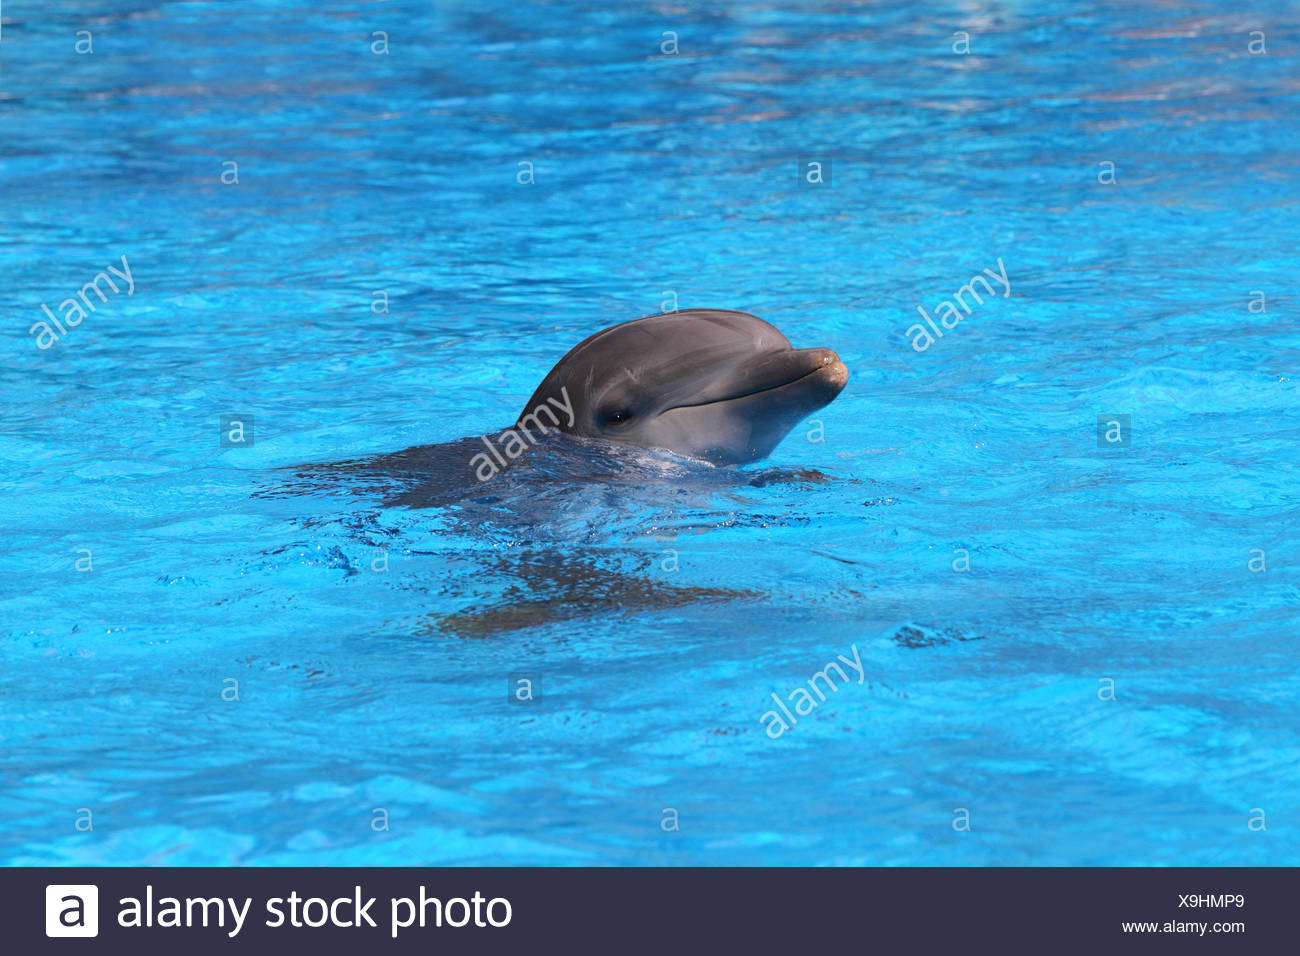 Bottlenose dolphin, pool, portrait, - Stock Image